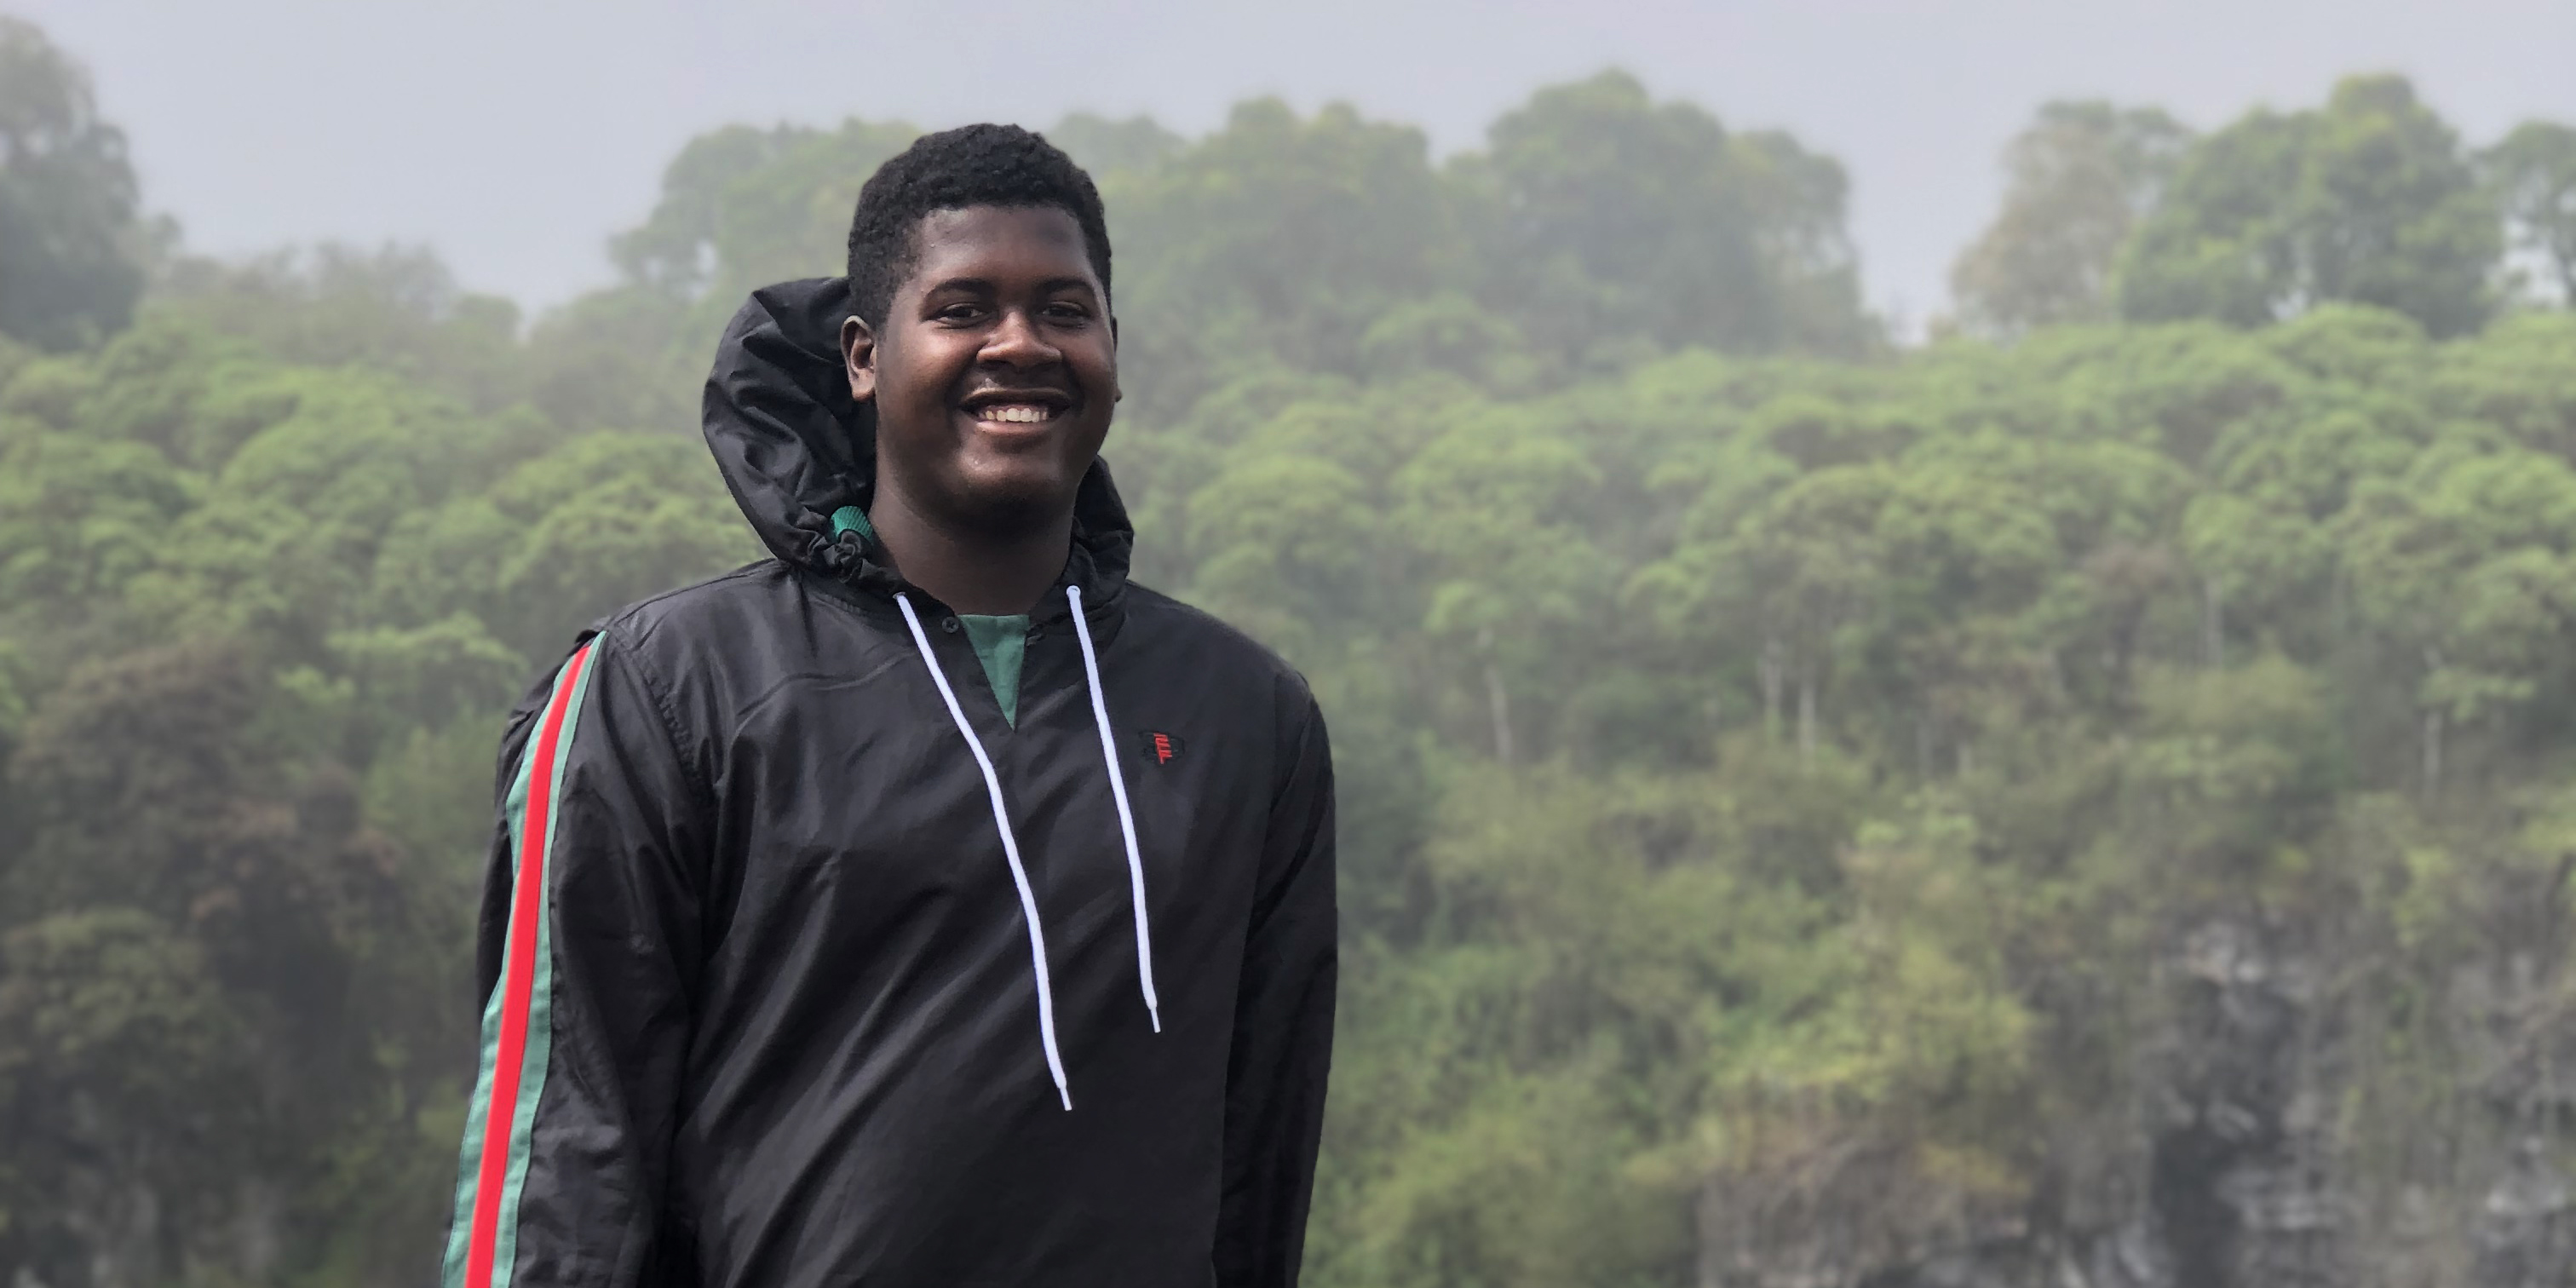 A student smiles with rainforest in the background